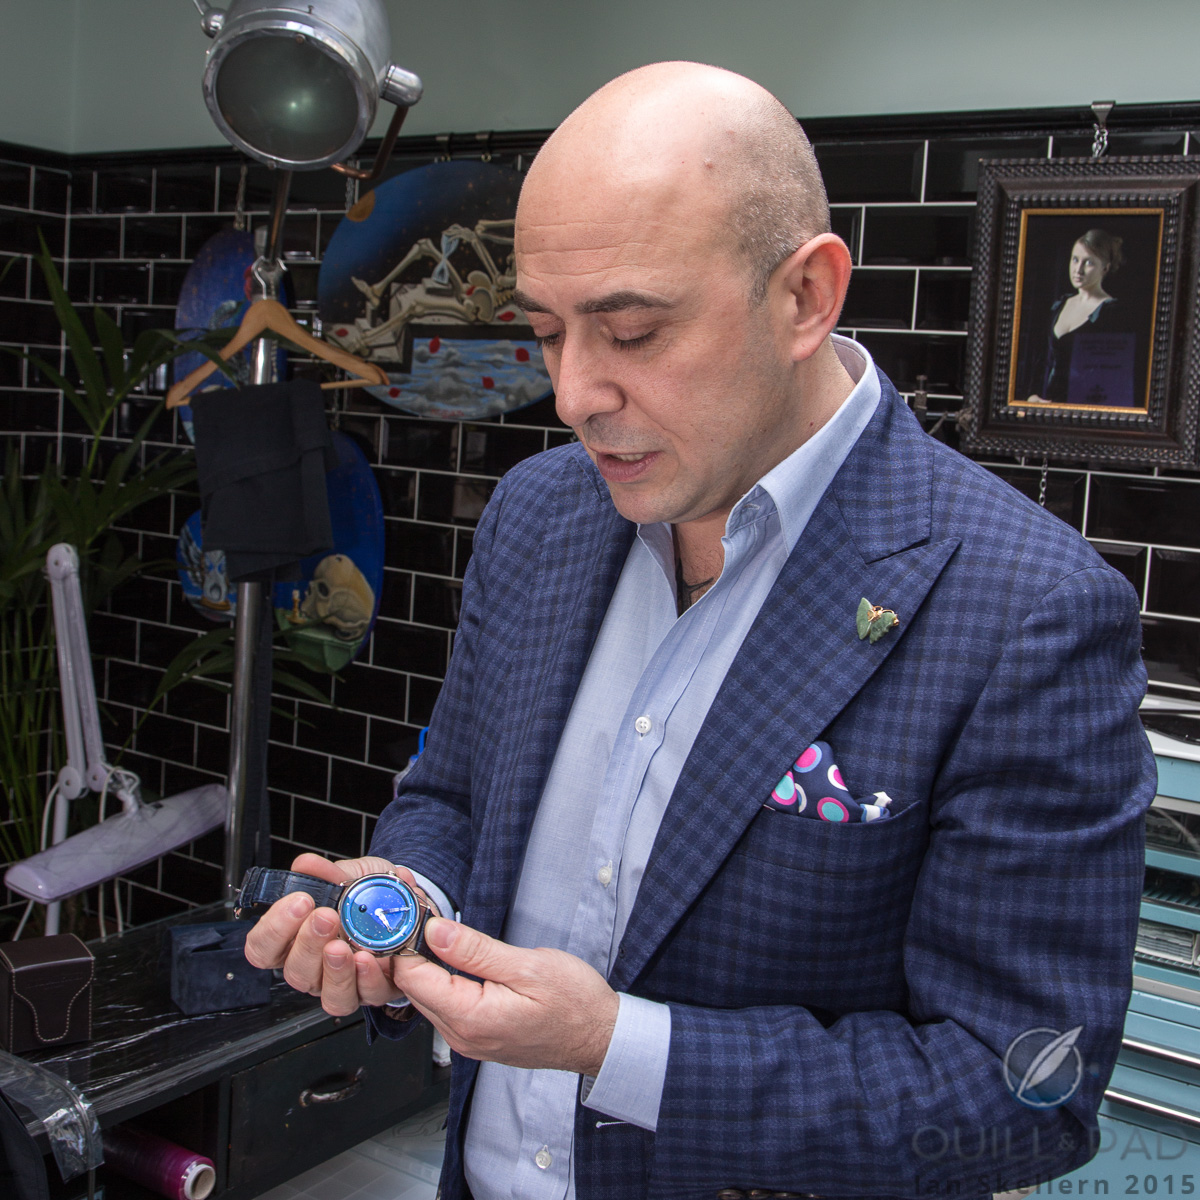 Mo Coppoletta with his De Bethune DB25L Starry Sky